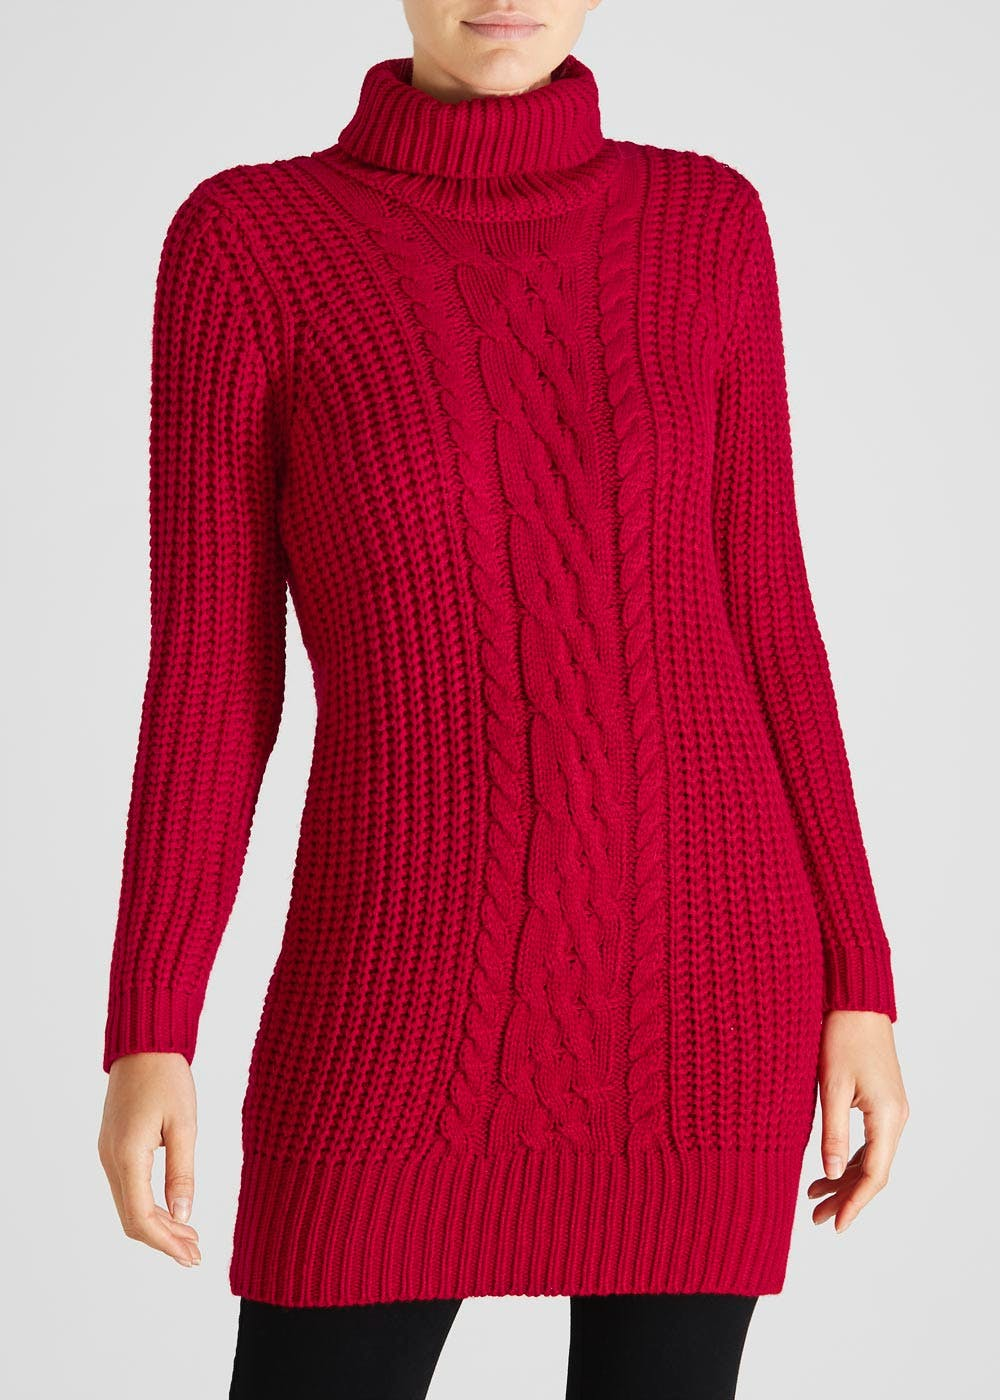 5bac44a8120 Roll Neck Cable Knit Jumper Dress – Red – Matalan